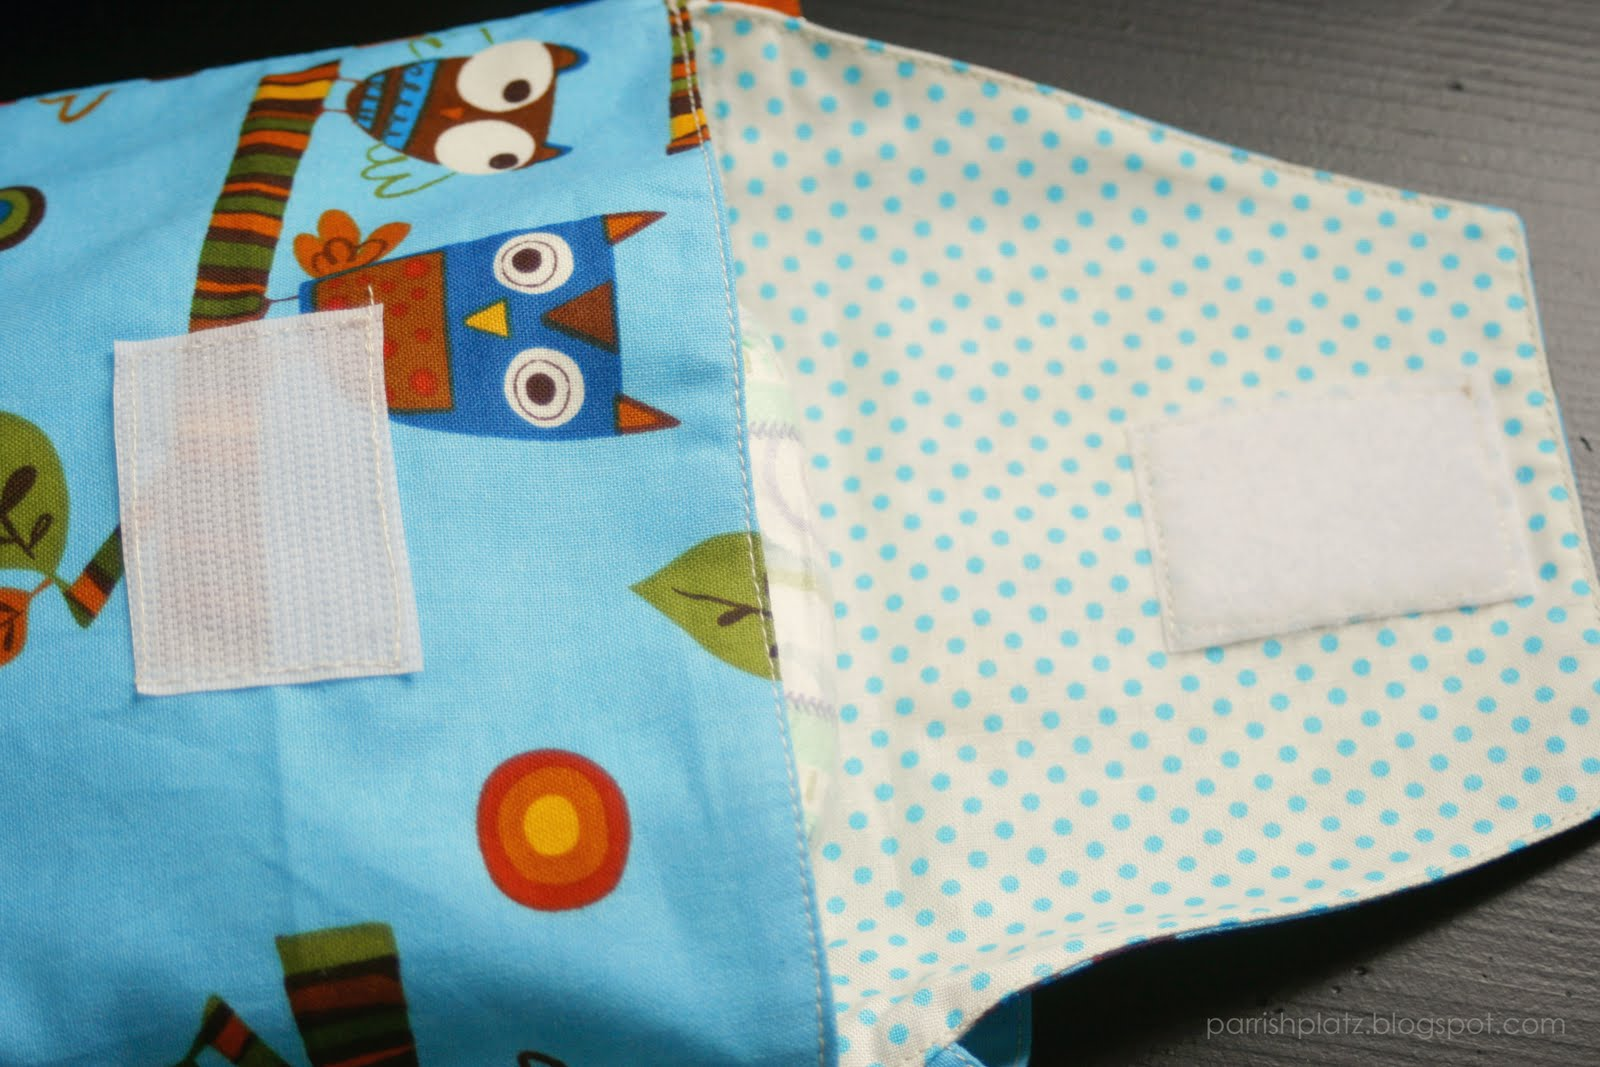 Diaper Wipe Pattern | Patterns Gallery